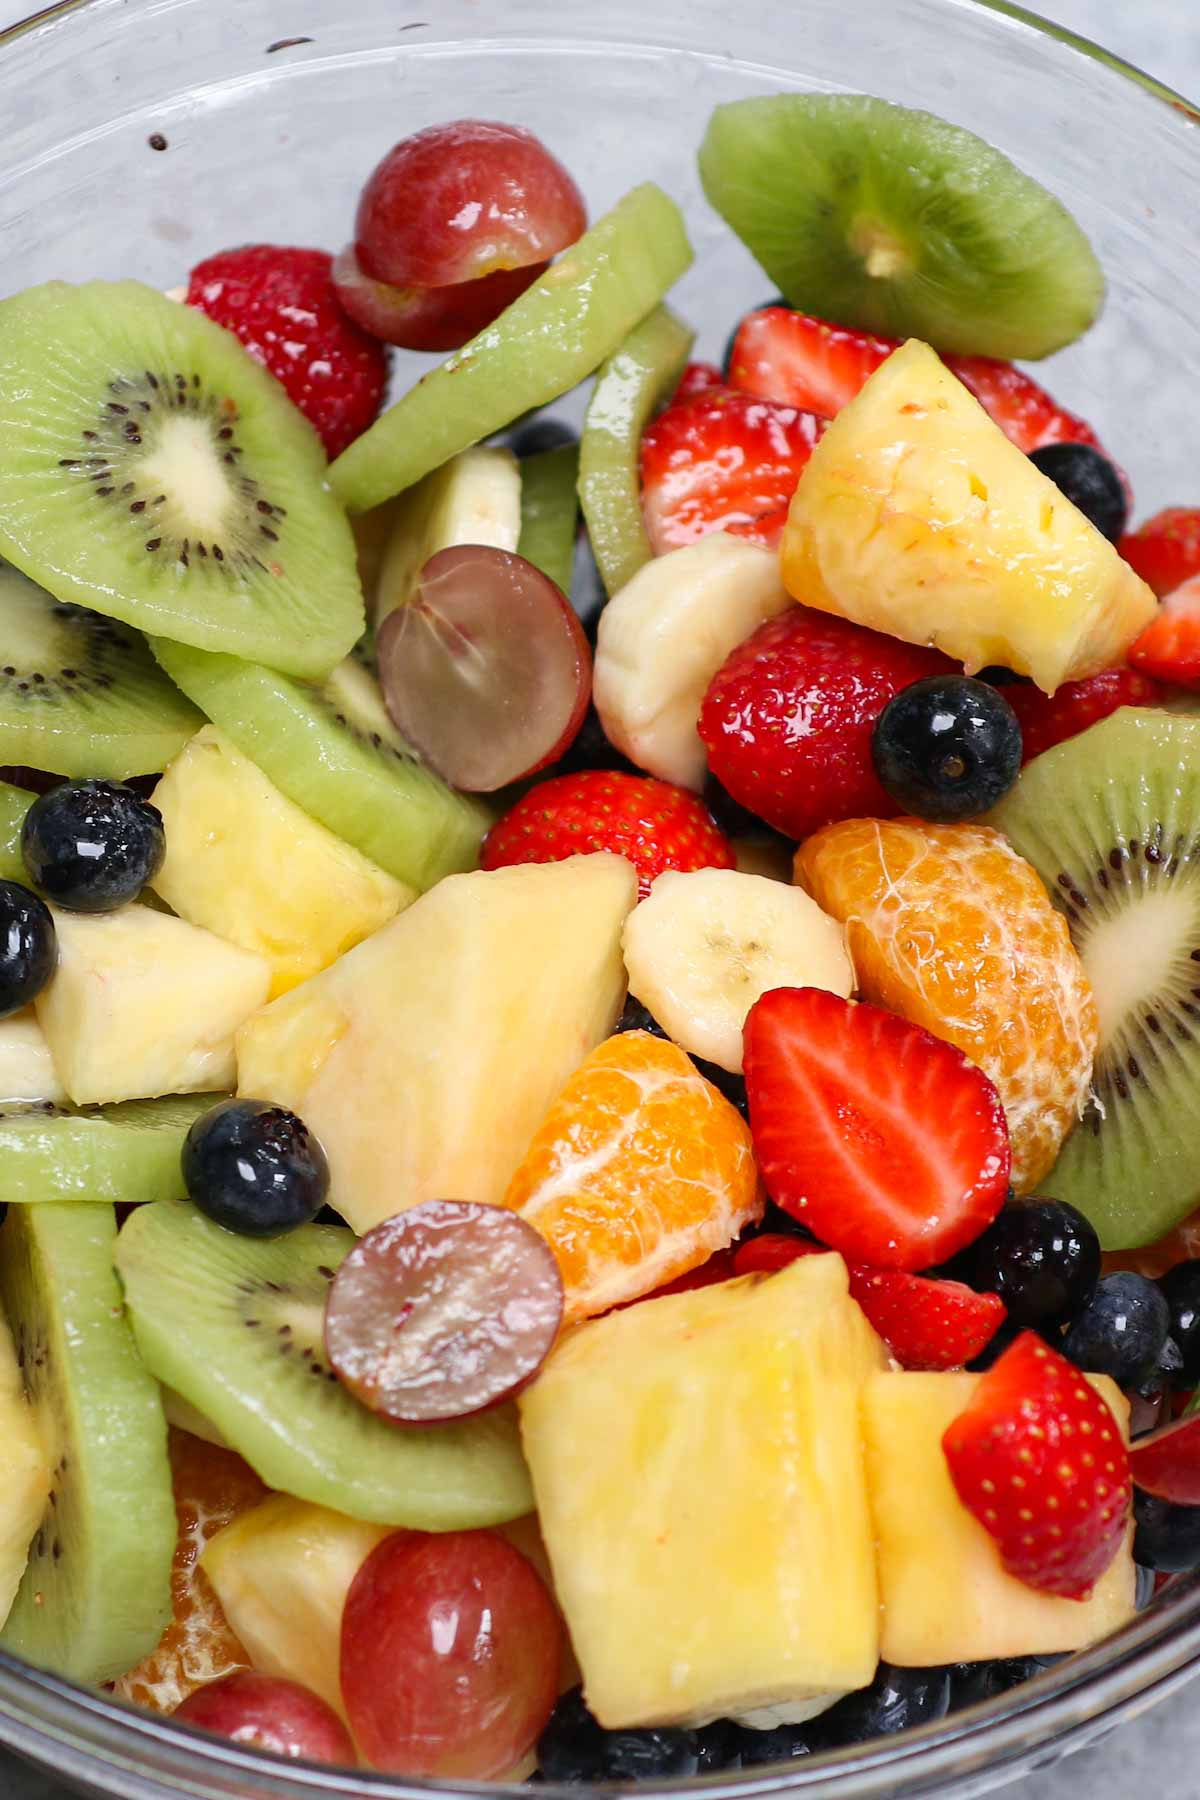 For a fruity and refreshing snack, dessert or appetizer, Fruit Cocktail is always a crowd favorite! What could be better than a variety of fresh, juicy fruits on a hot summer's day? If you aren't a fan of canned fruit cocktail salad, you're sure to enjoy this easy, homemade version using seasonal fruit and berries.